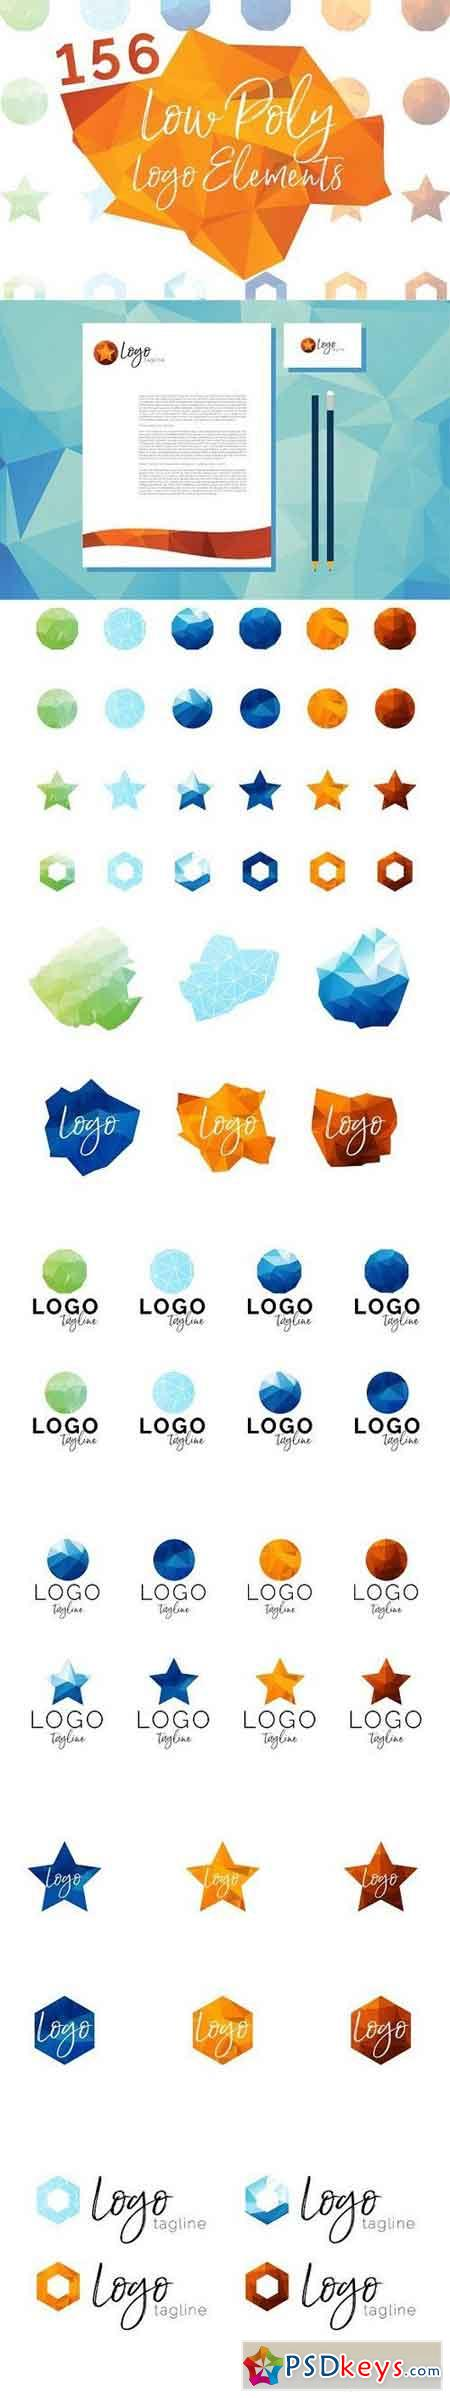 156 Low Poly Logo Elements 1339052